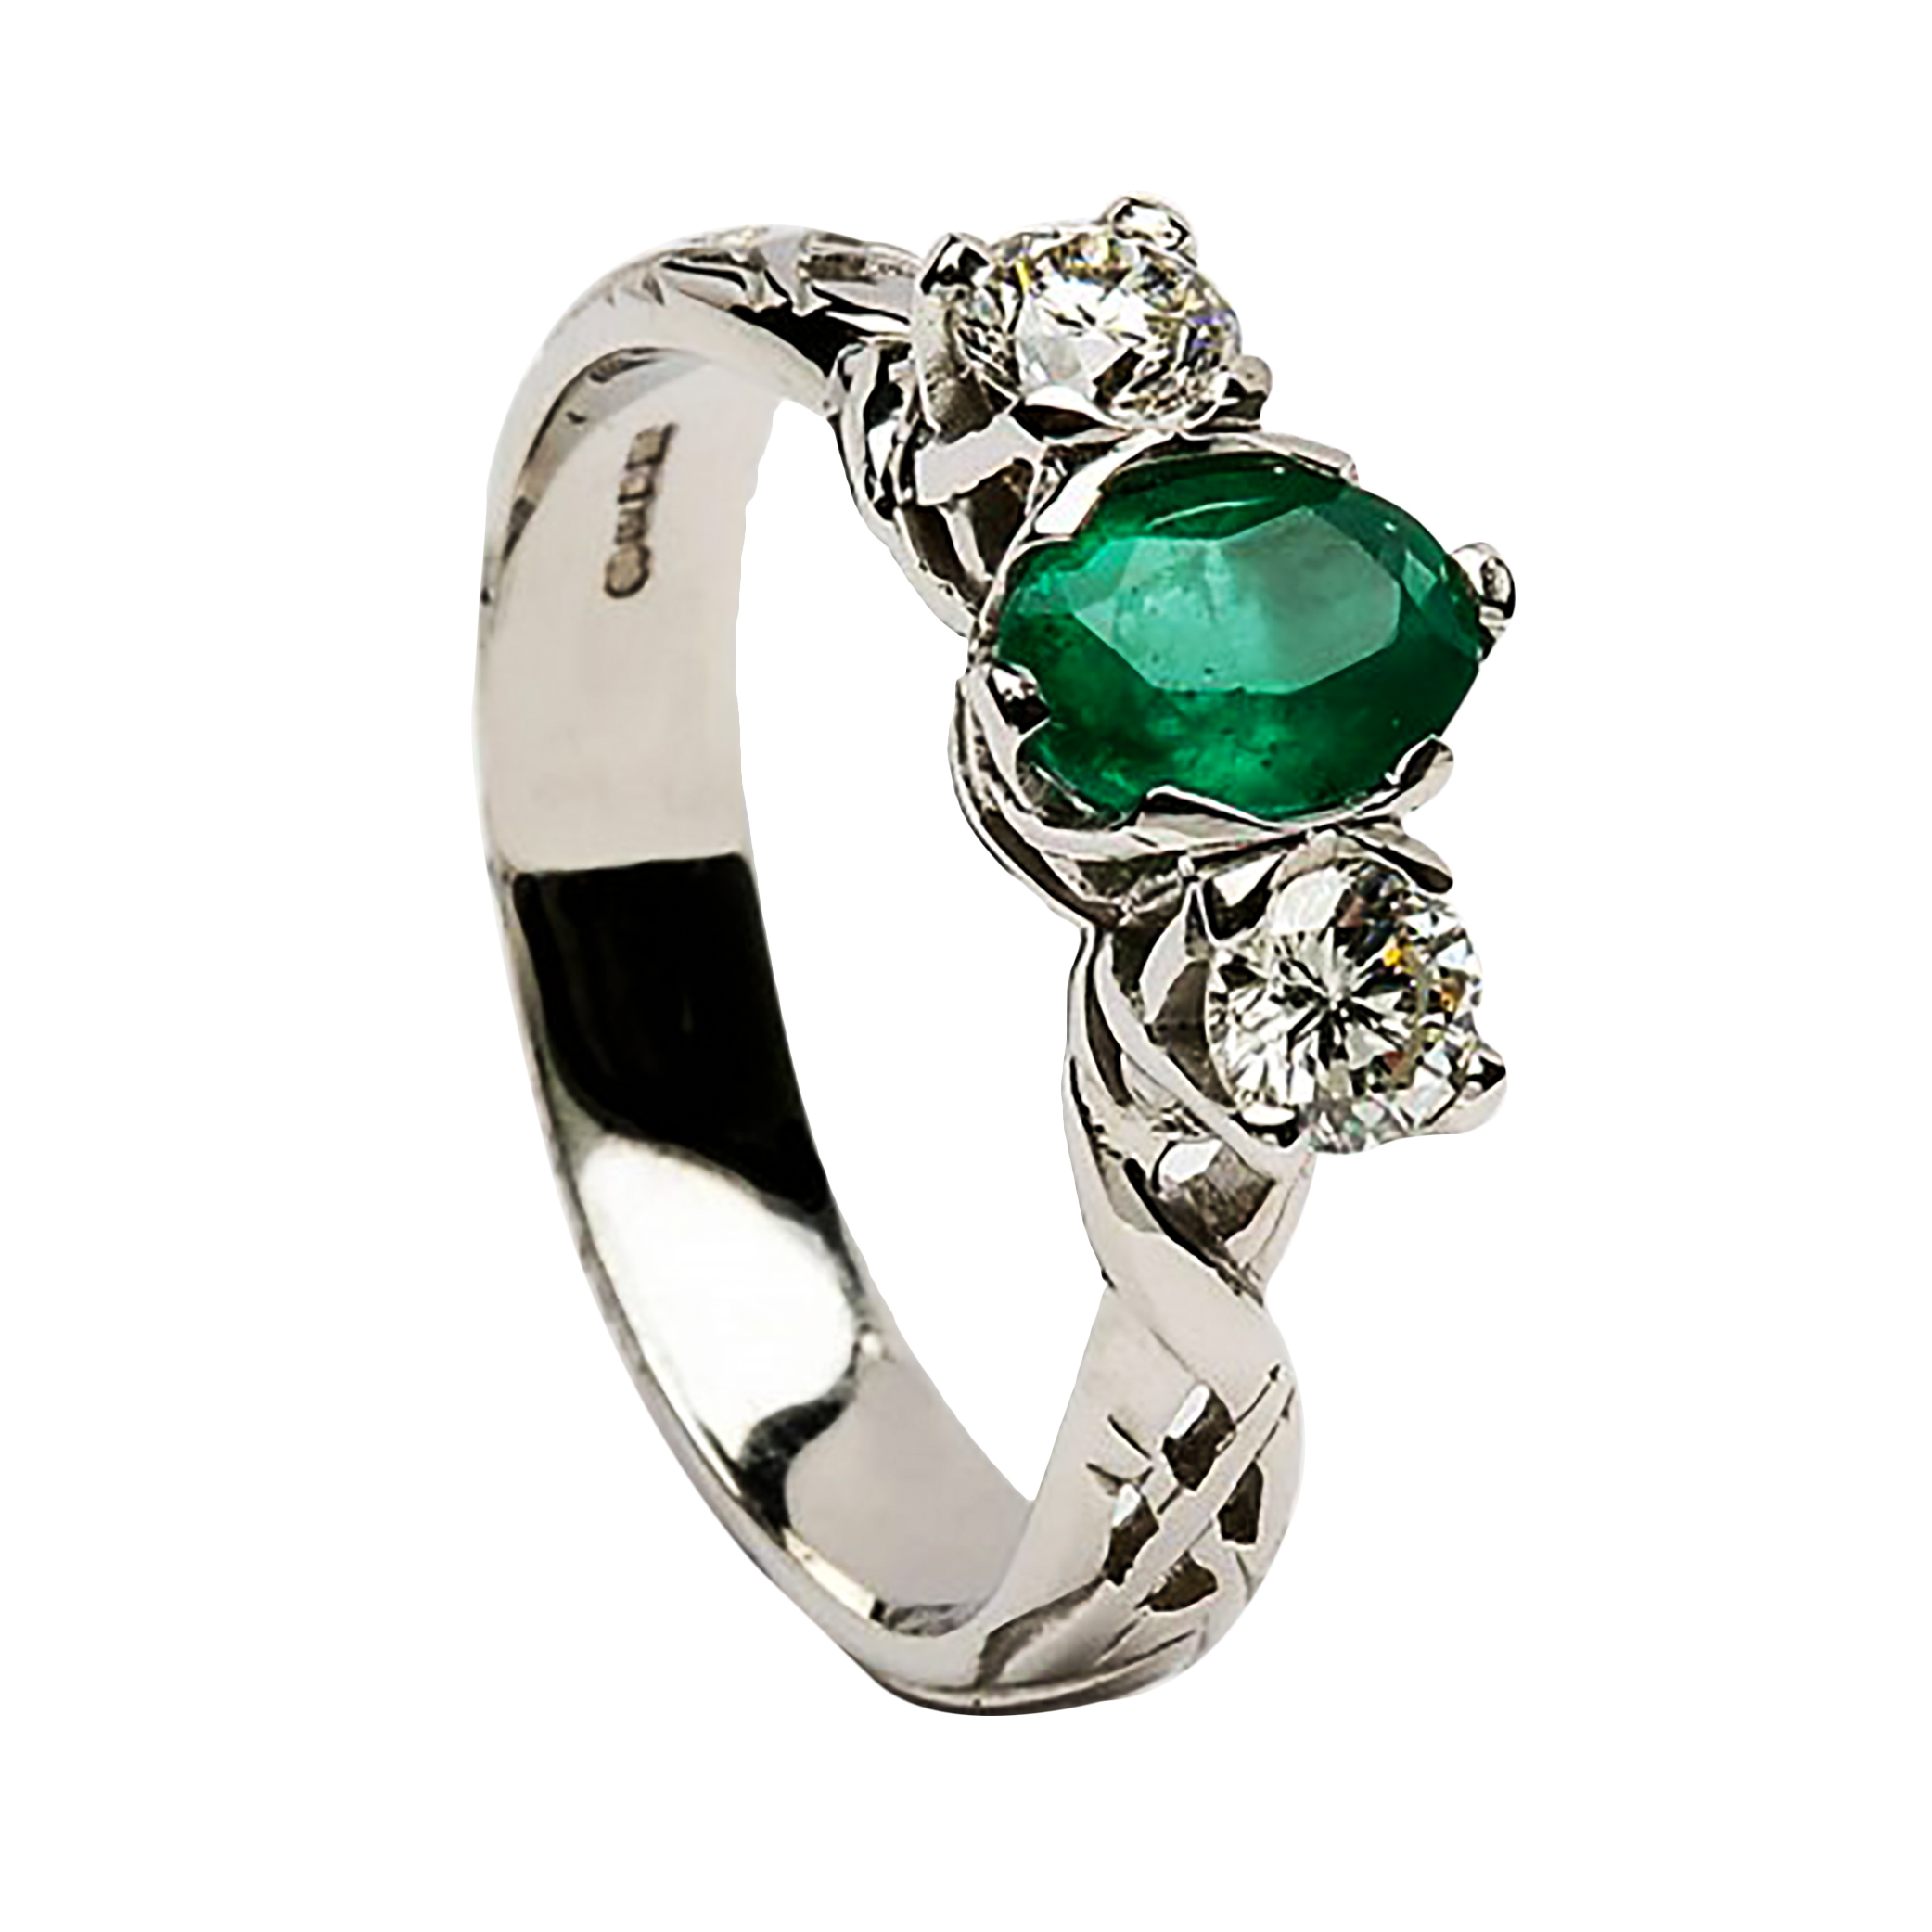 diamond jethro product rings marles platinum eternity emerald ring and emeral